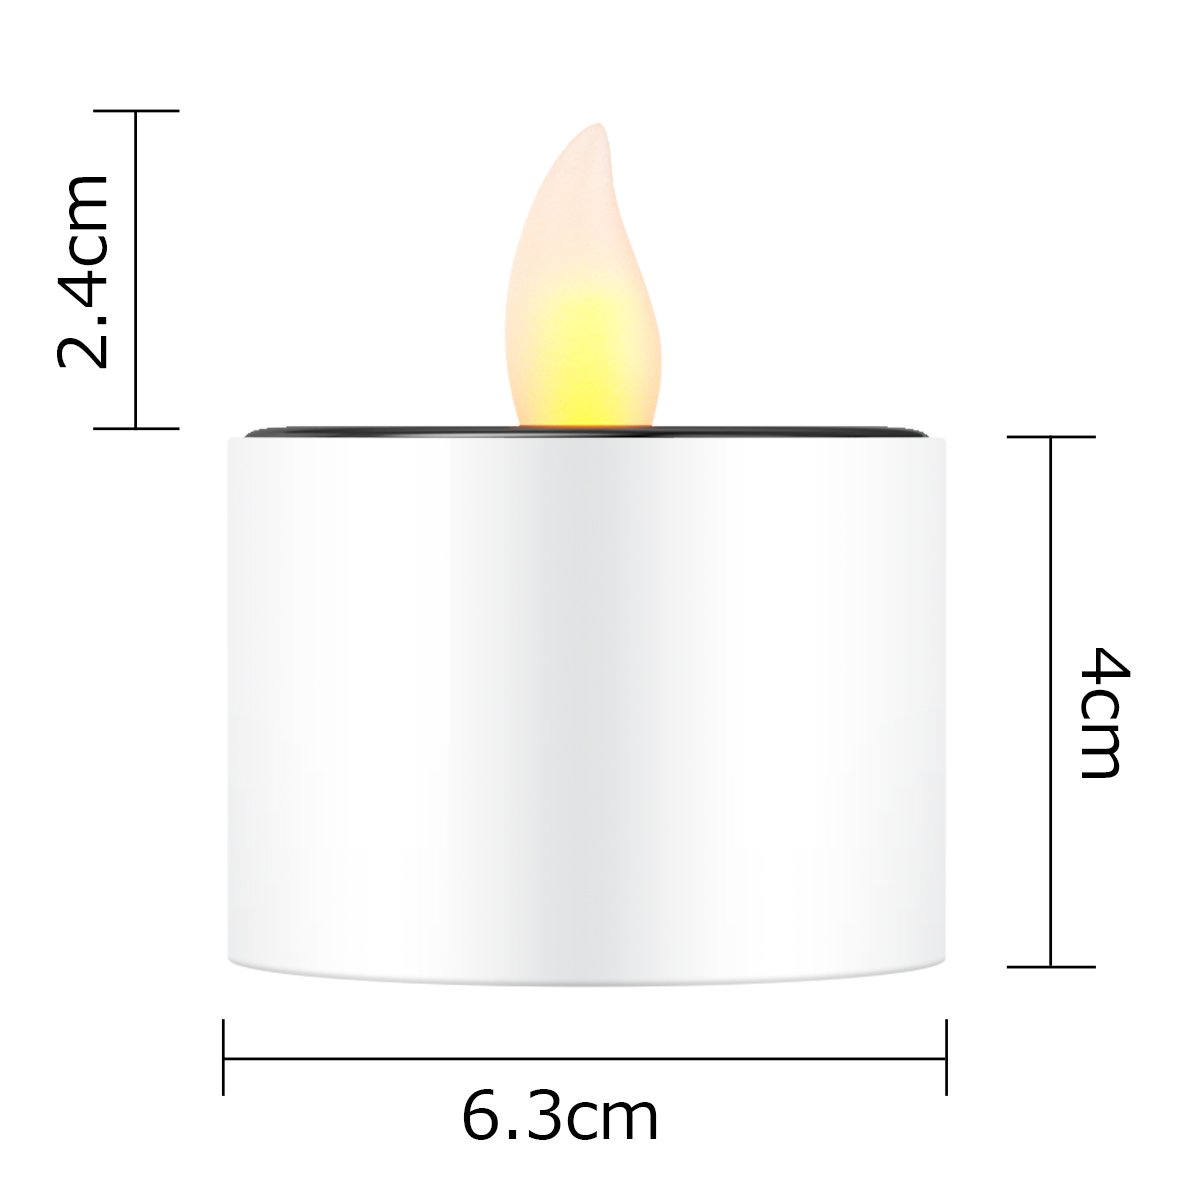 Solar Candles Flameless Rechargeable Candles LED Tea Lights Candles Battery Operated Upgraded Solar Power Waterproof Warm White Candle Set of 6 for Home Bar Bedroom Living Room Garden Outdoor Indoor by EXPOWER (Image #3)